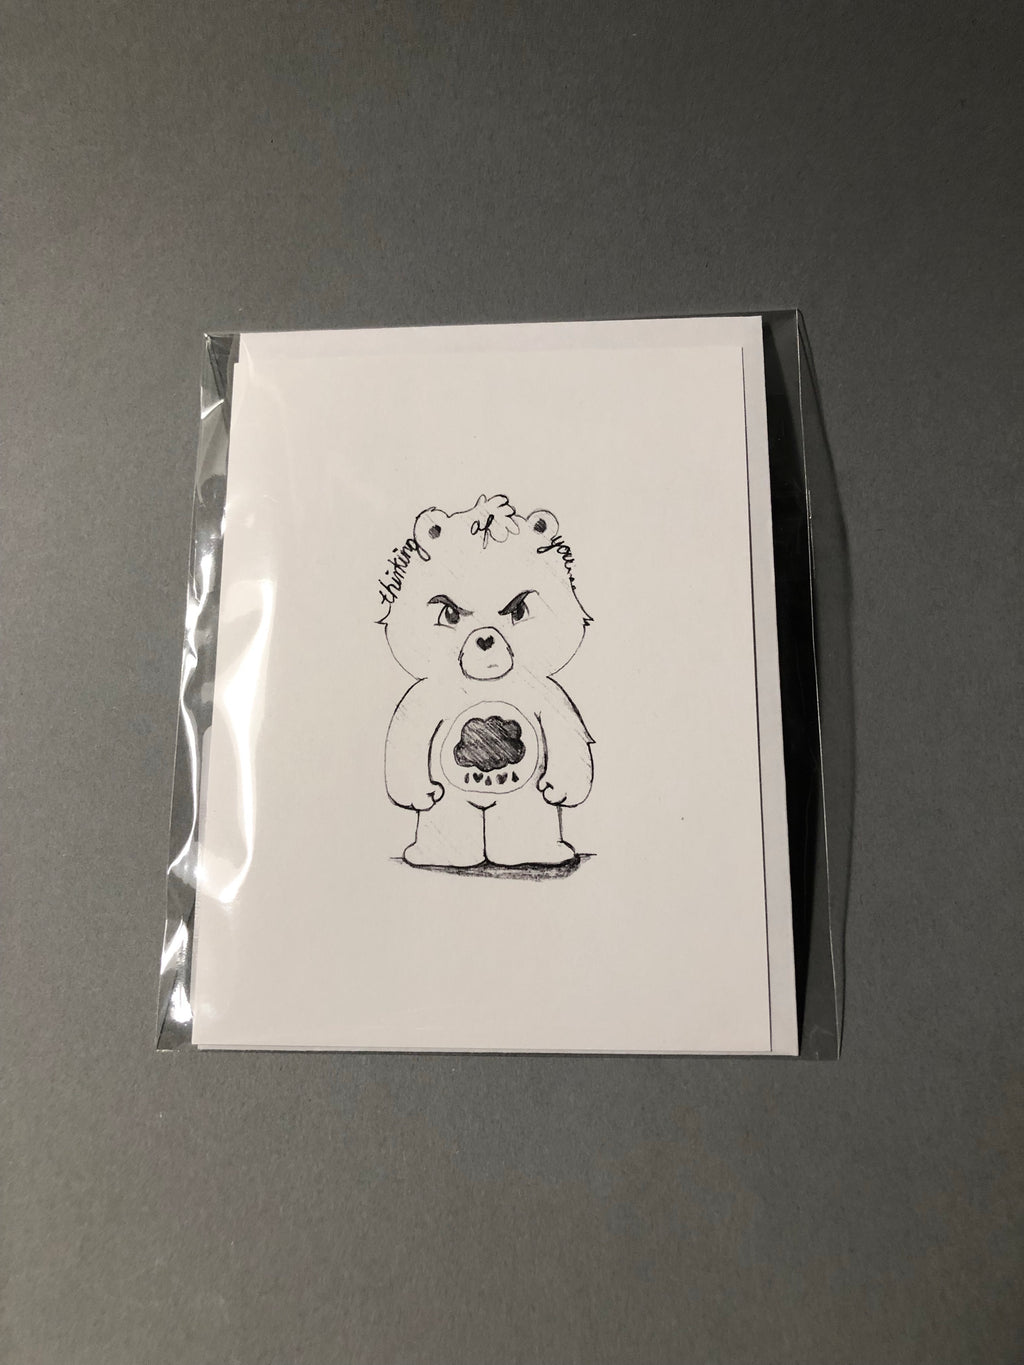 'Thinking of You' Grumpy Bear Greeting Card